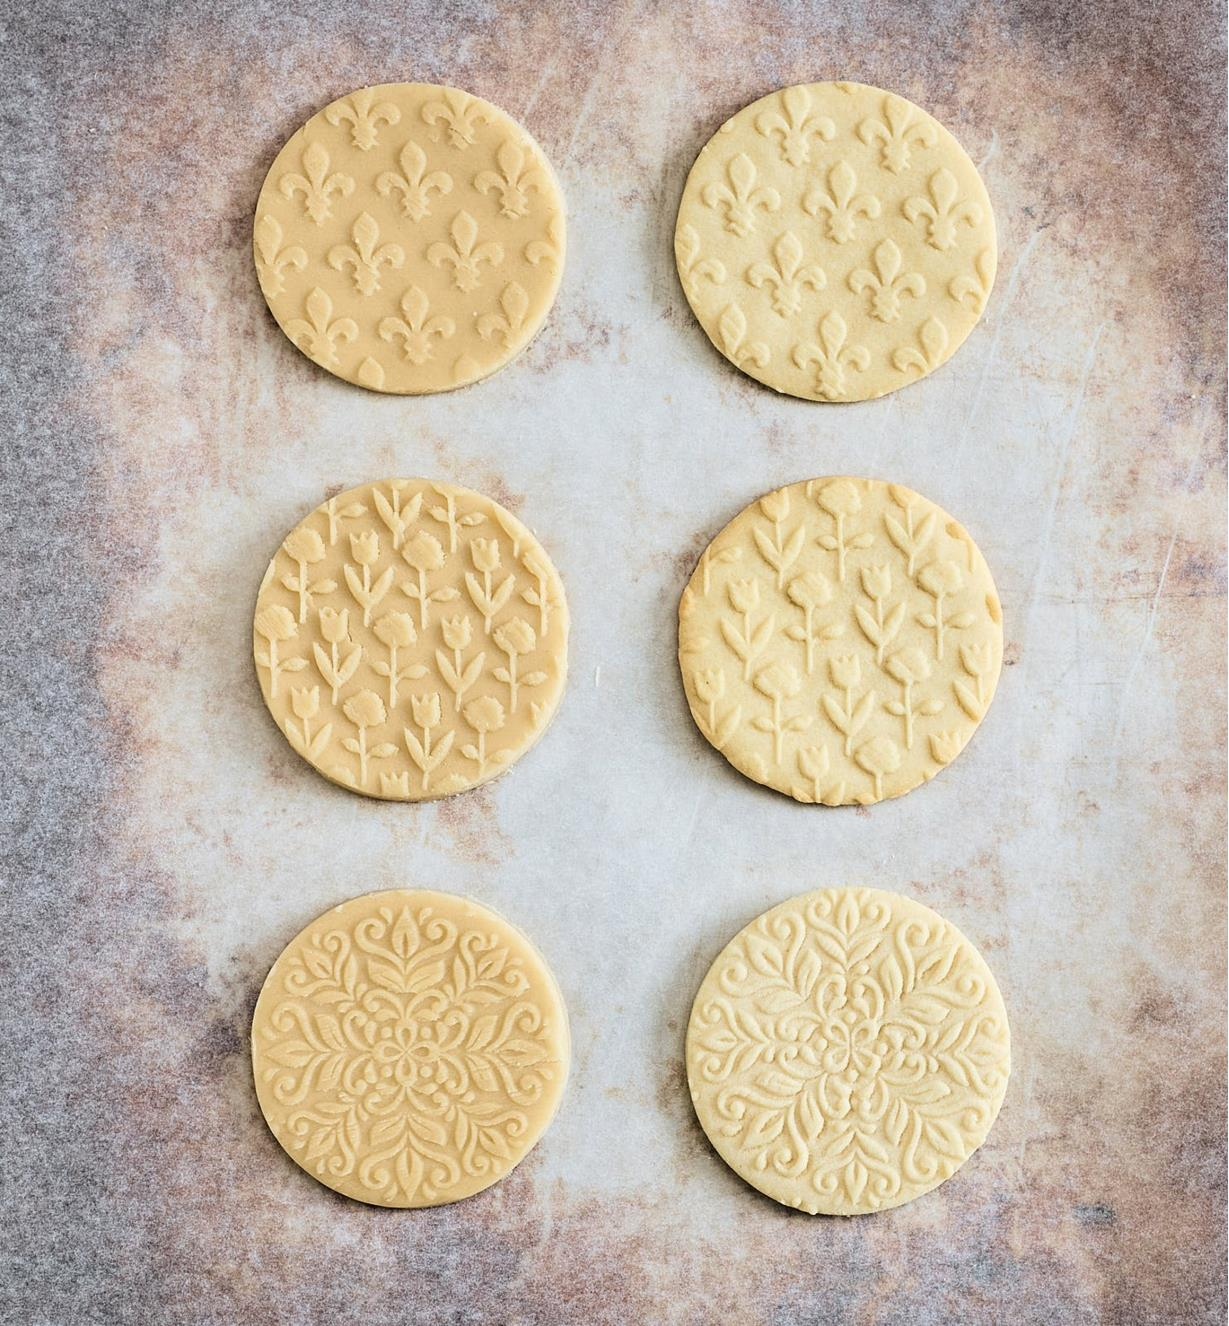 Cookies embossed by embossing rolling pins in pairs of each pattern, Fleur de Lis, Roses and Tulips and Kaleidoscope, comparing before and after baking